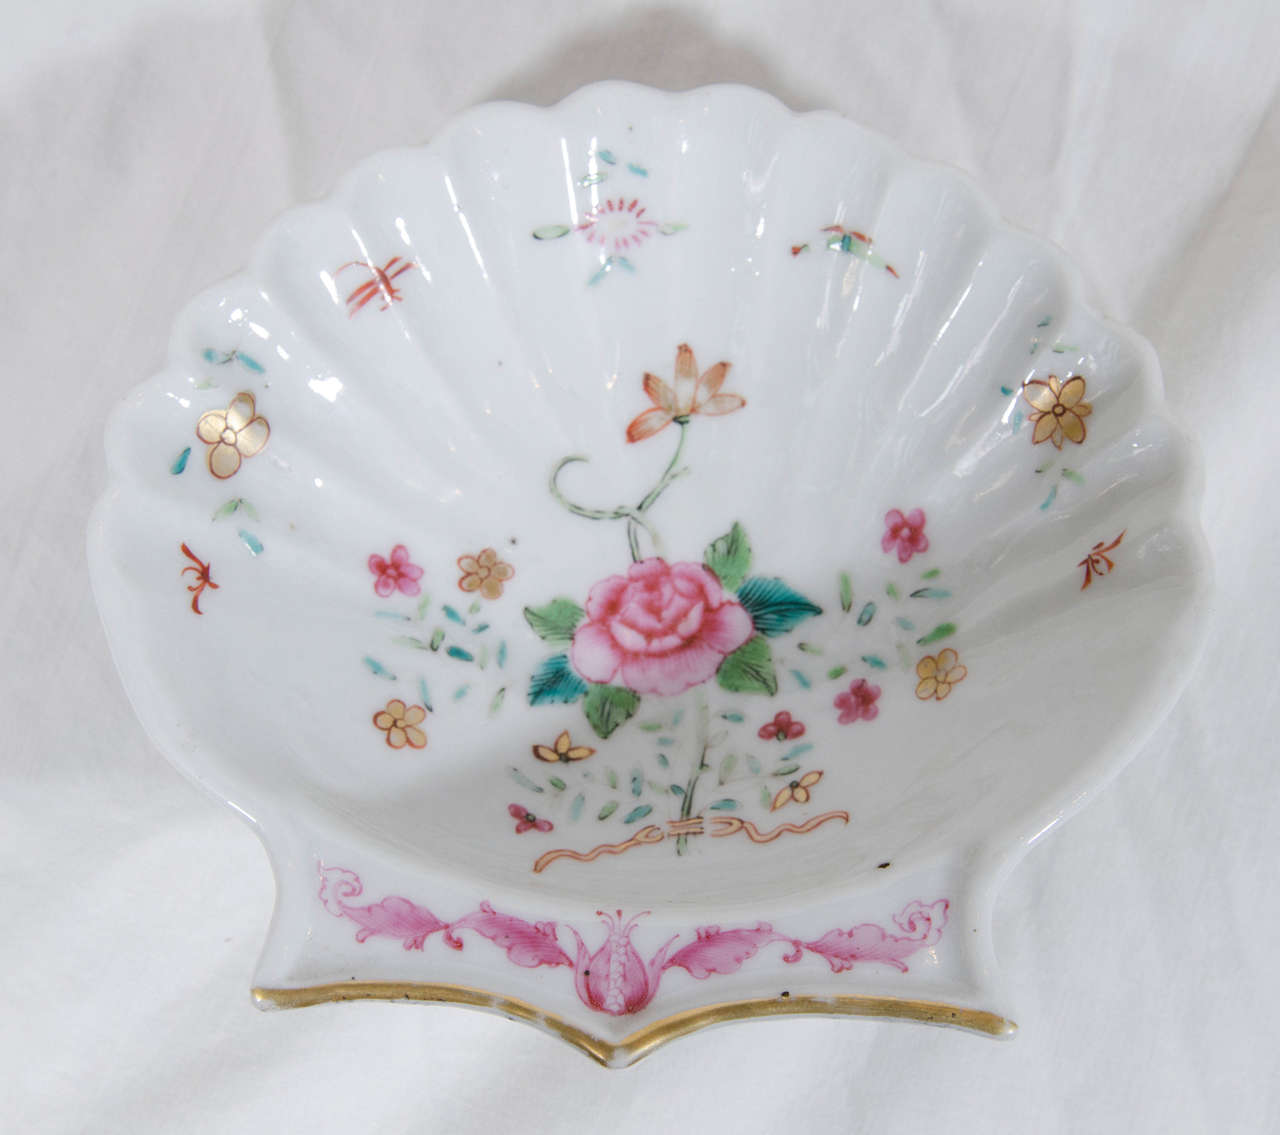 A pair of delicate shell shaped Chinese export dishes made in the 18th century. They are painted in soft famille rose colors featuring a pink peony among green and turquoise leaves.  Dimensions: 5.5